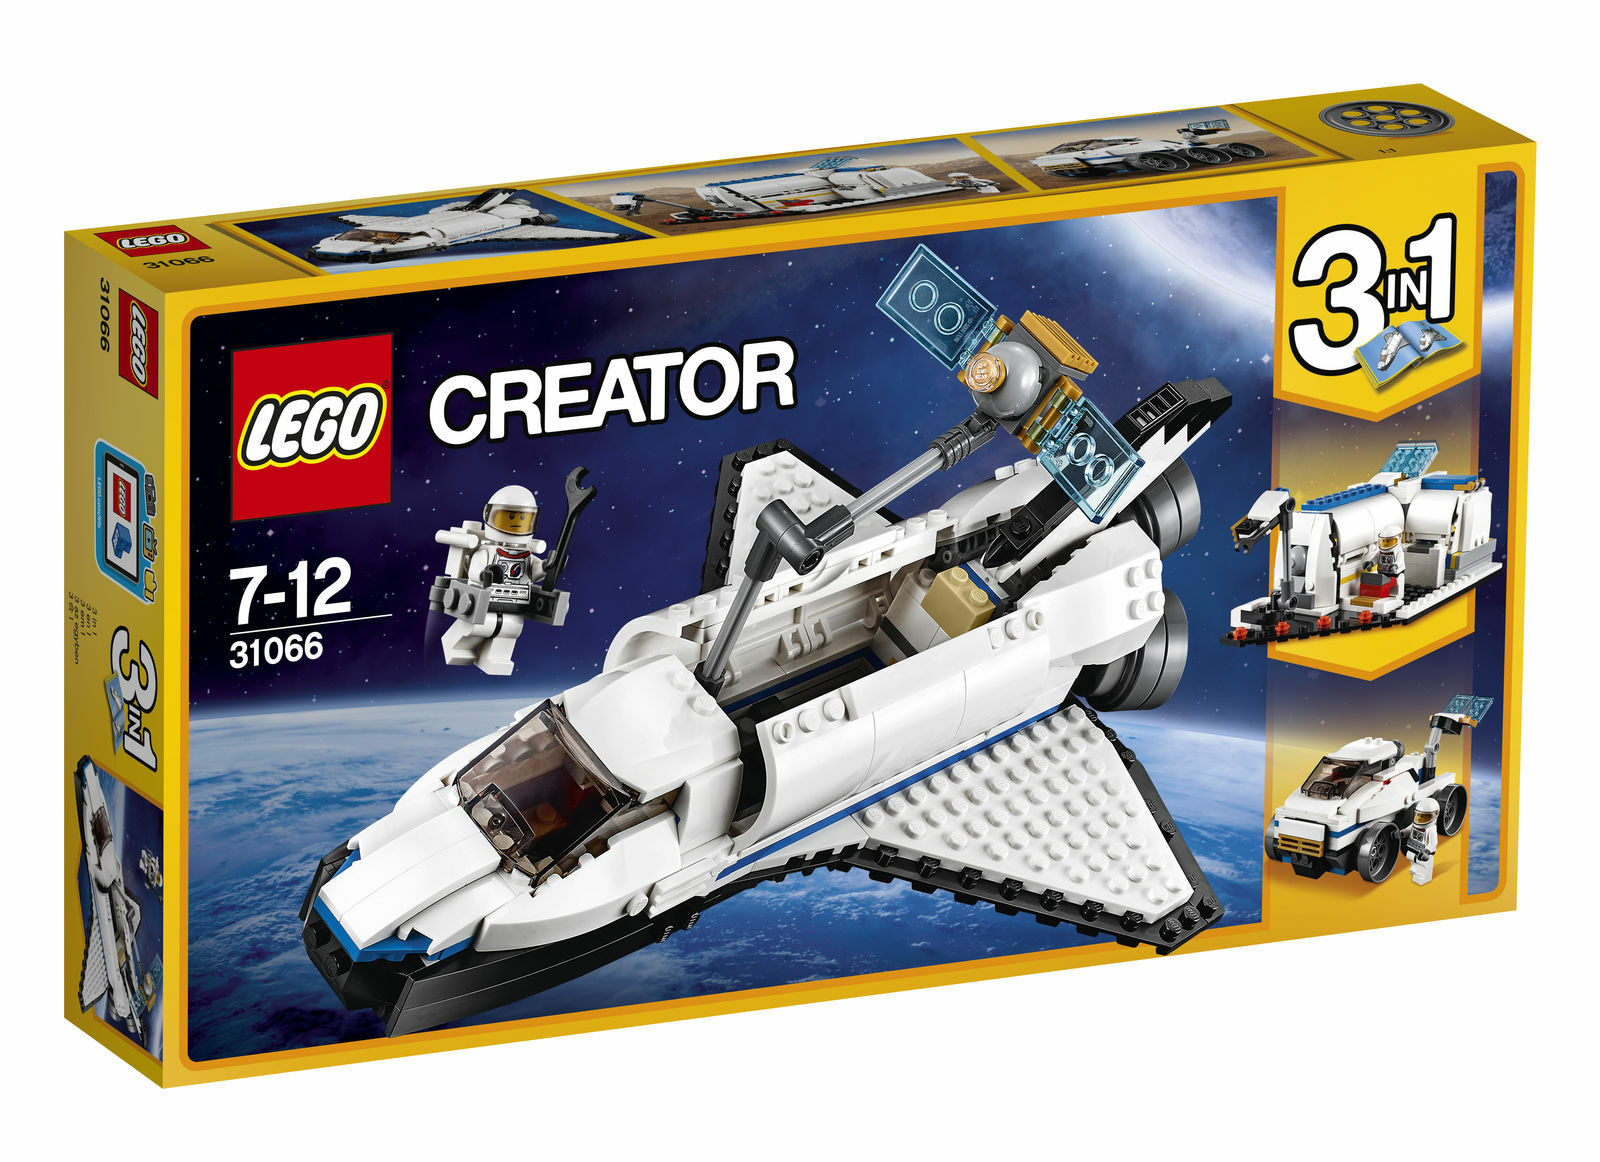 LEGO Creator 31066 - Space Shuttle Explorer - New + Sealed   .